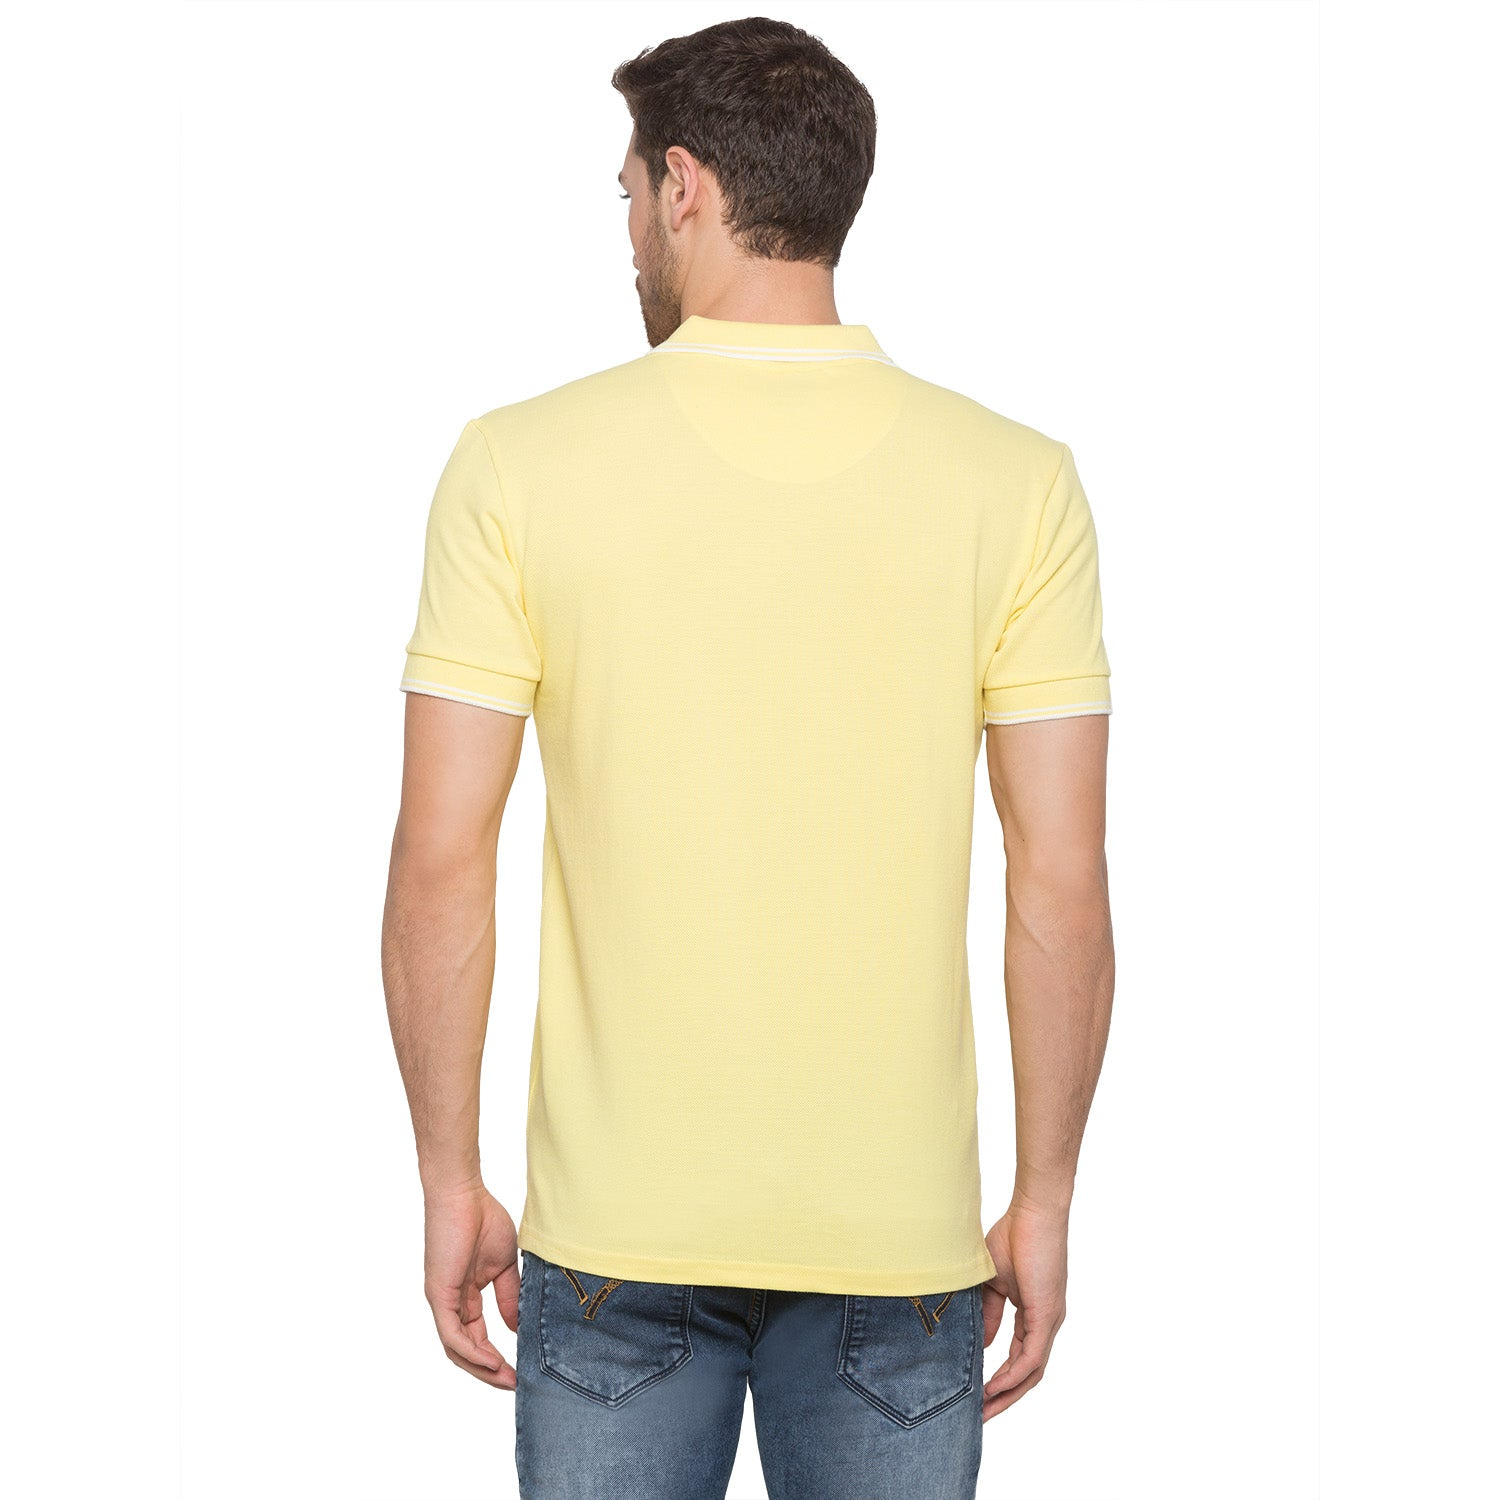 Globus Yellow Solid Polo T-Shirt3